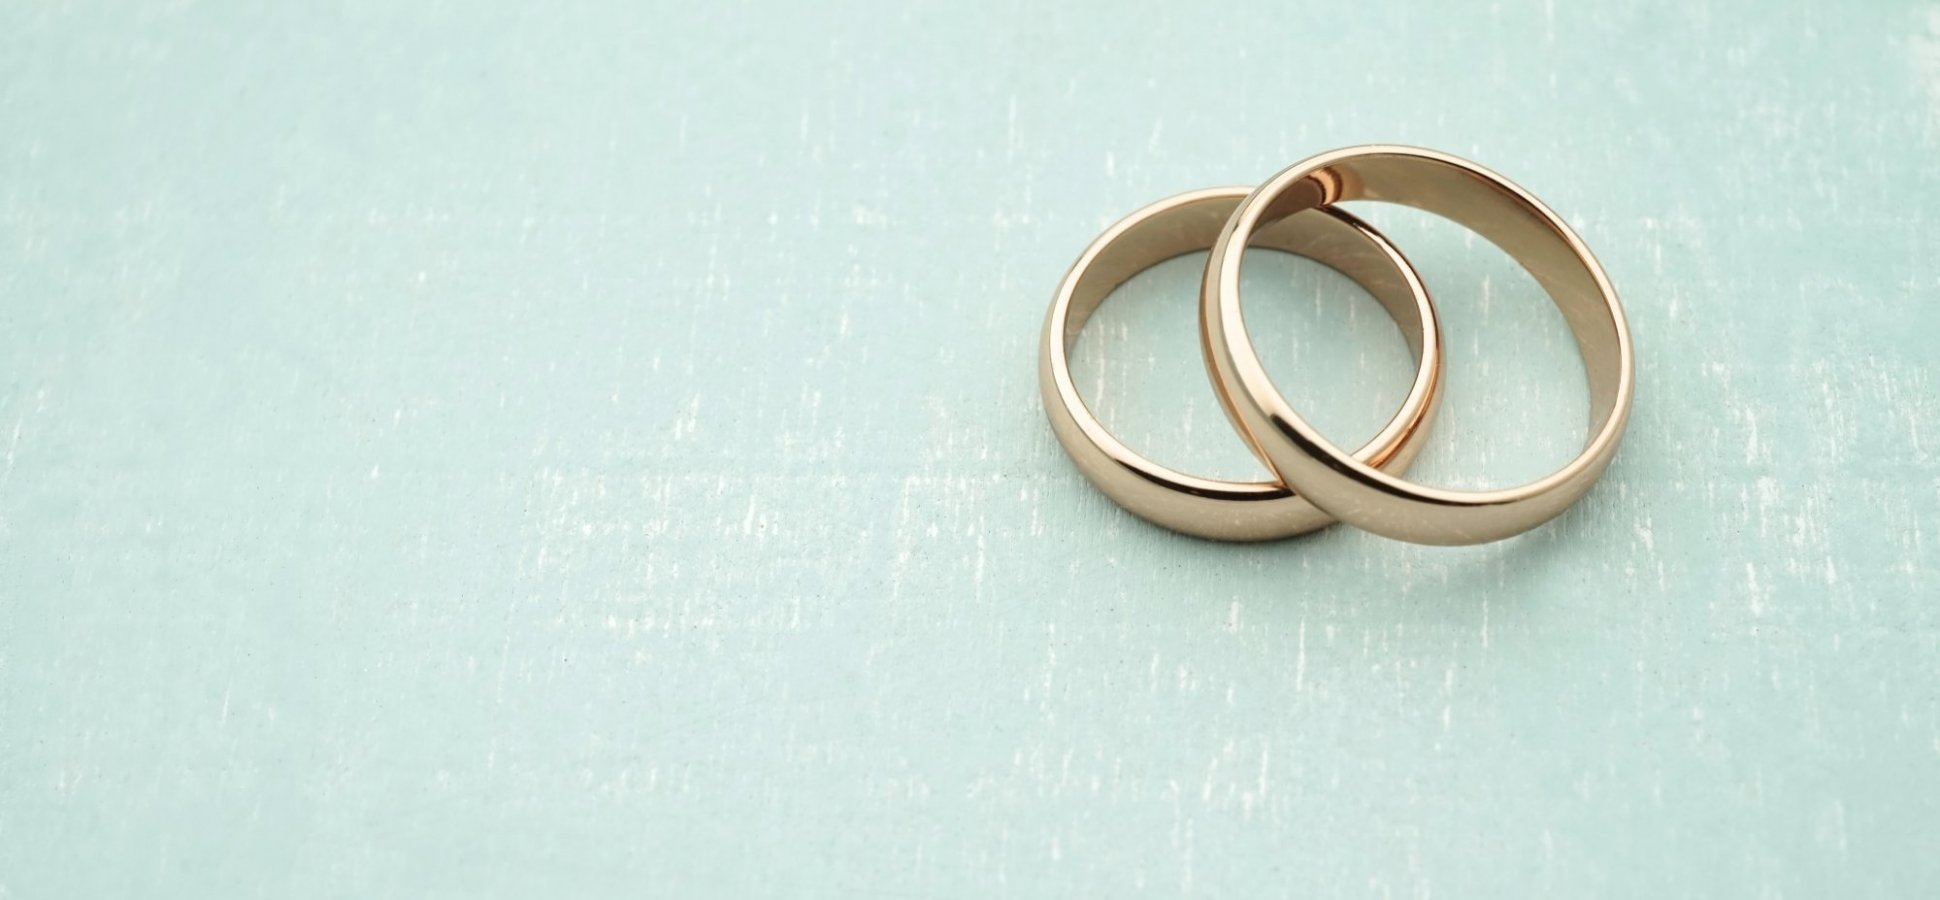 Is arranged marriage better than love marriage?